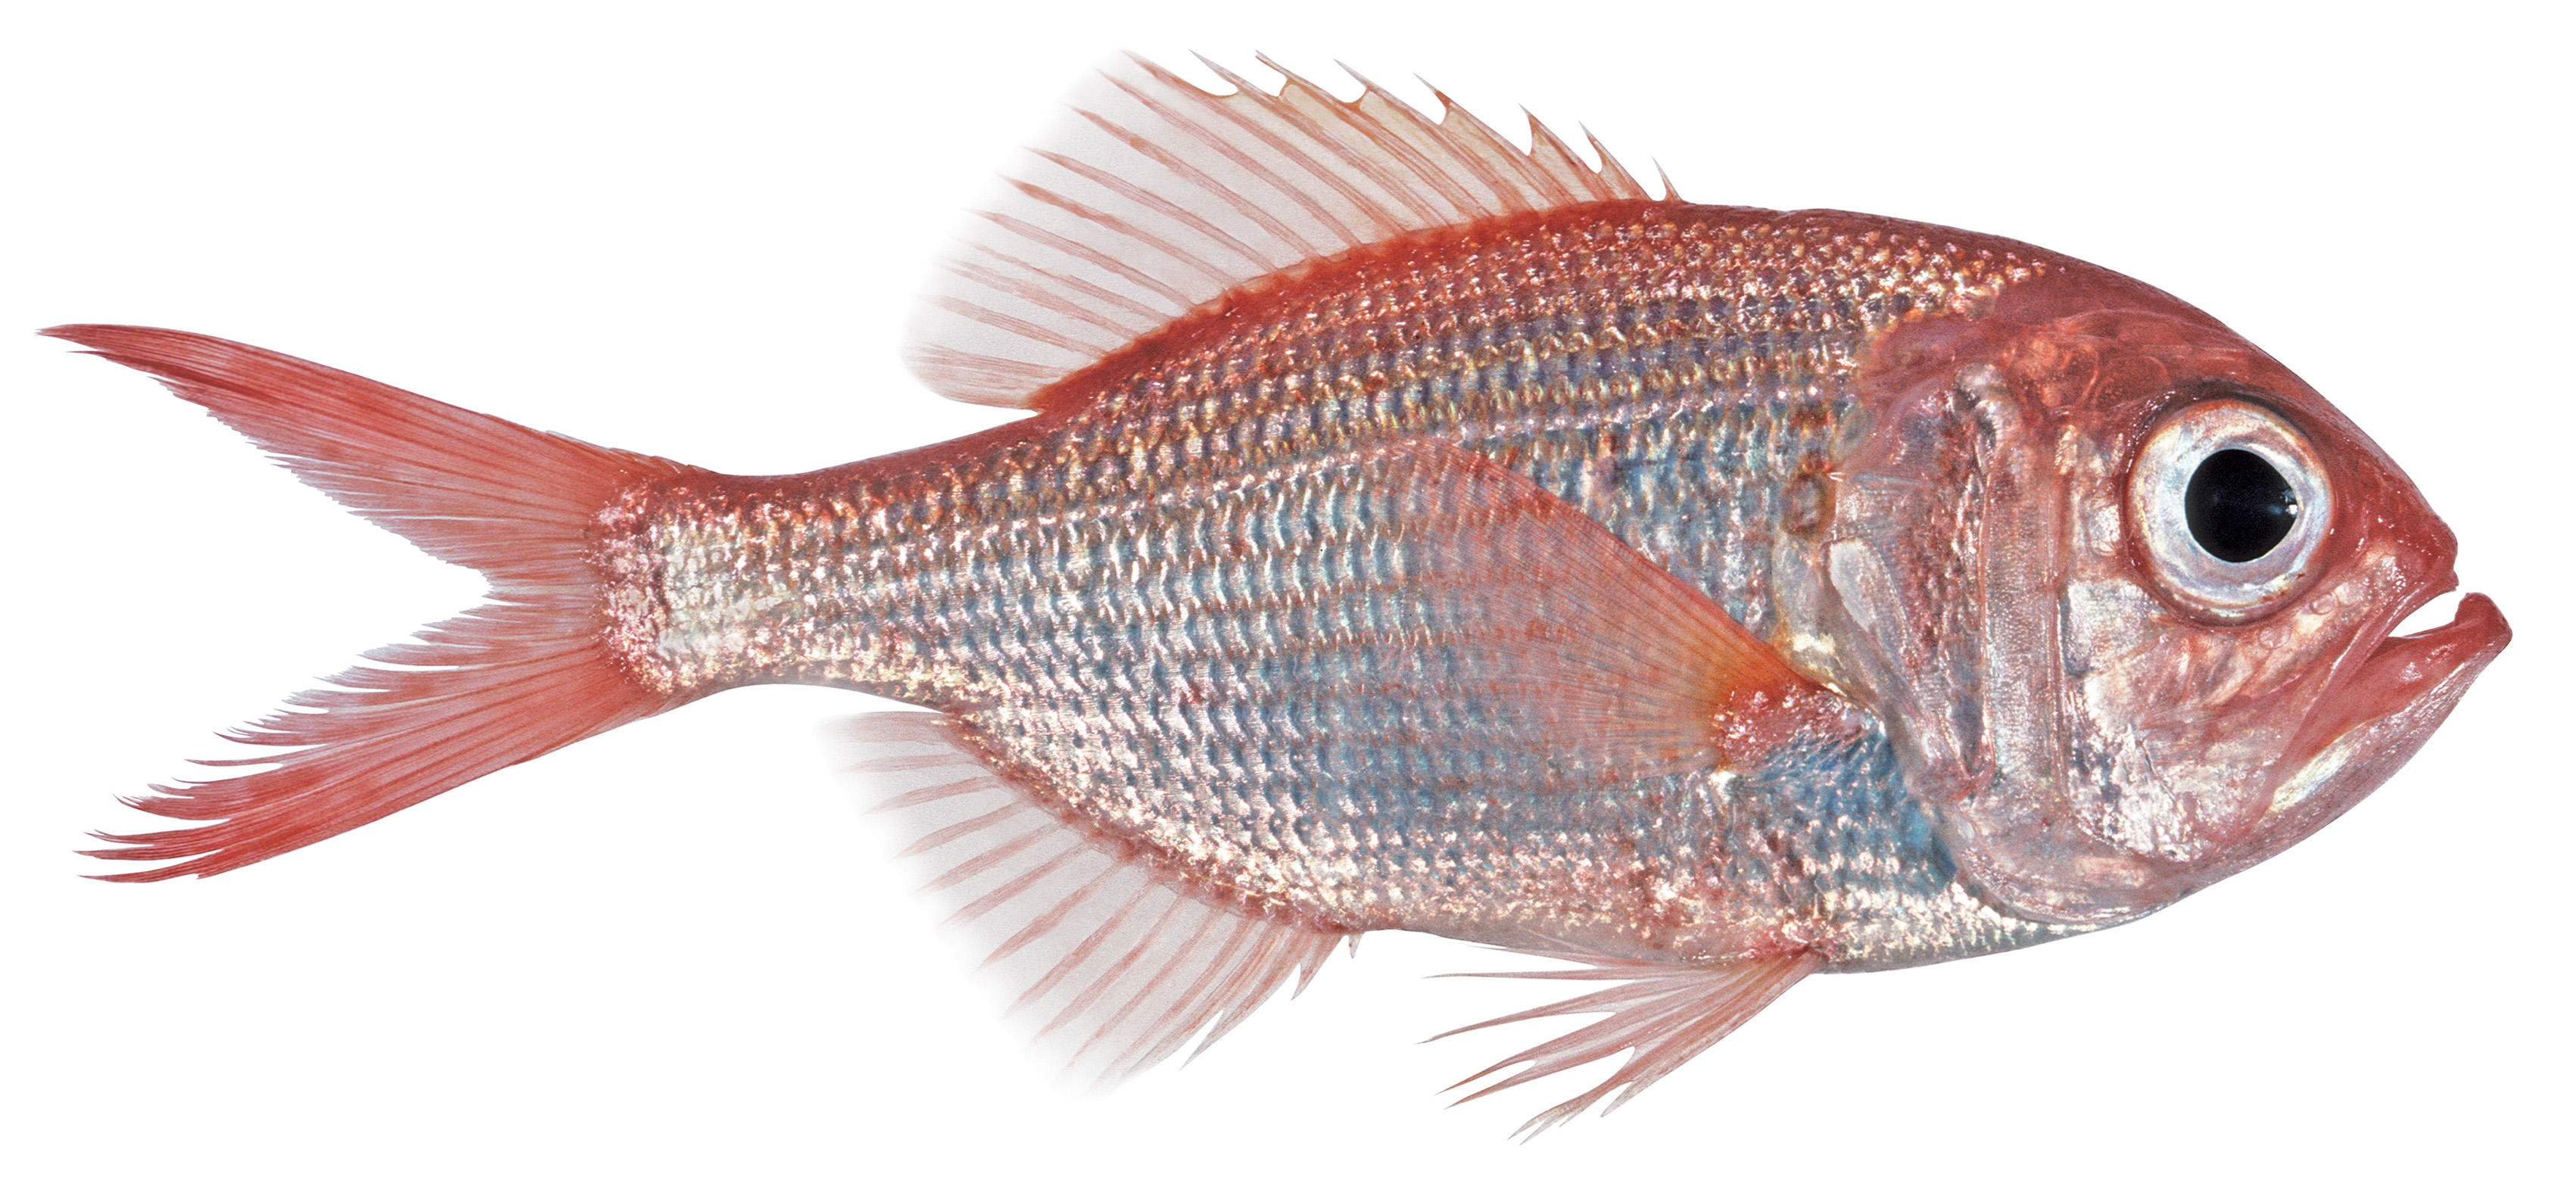 Superior FishMap On The Atlas Of Living Australia Provides The Geographical And  Depth Ranges Of Some 4500 Australian Marine Fishes, Including The Redfish  ...